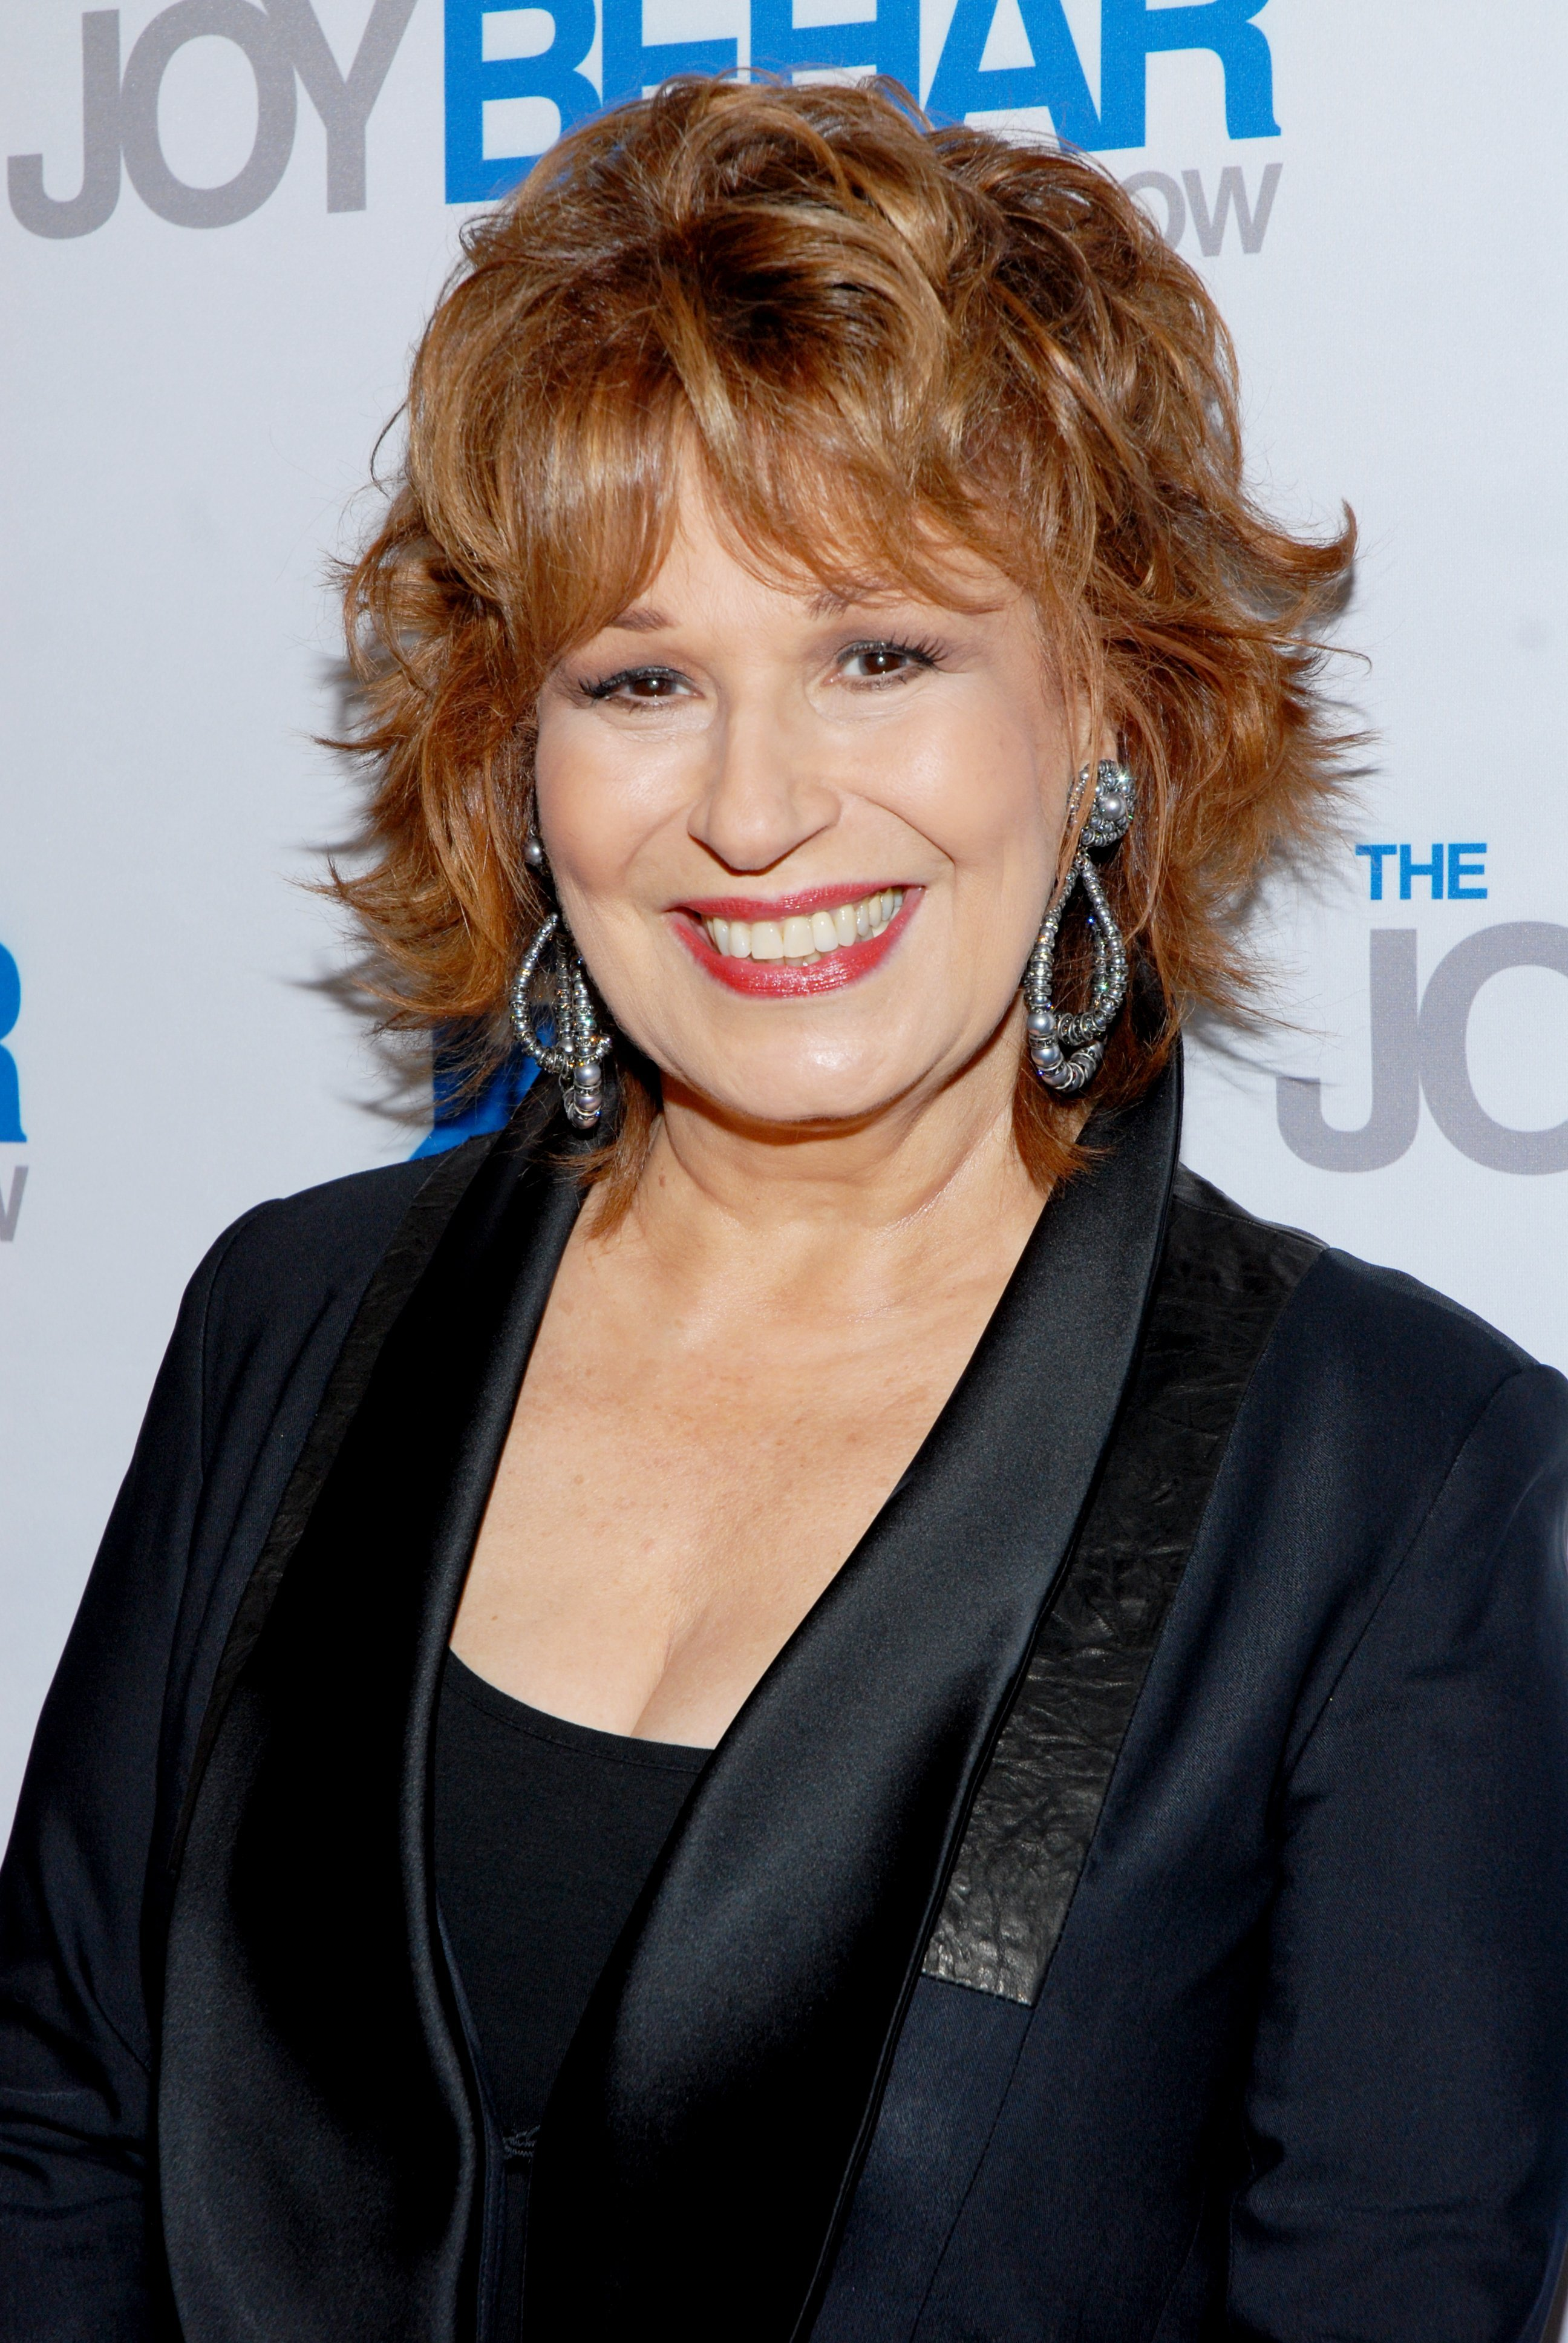 """Joy Behar attends """"The Joy Behar Show"""" launch party at the Oak Room on September 23, 2009. 